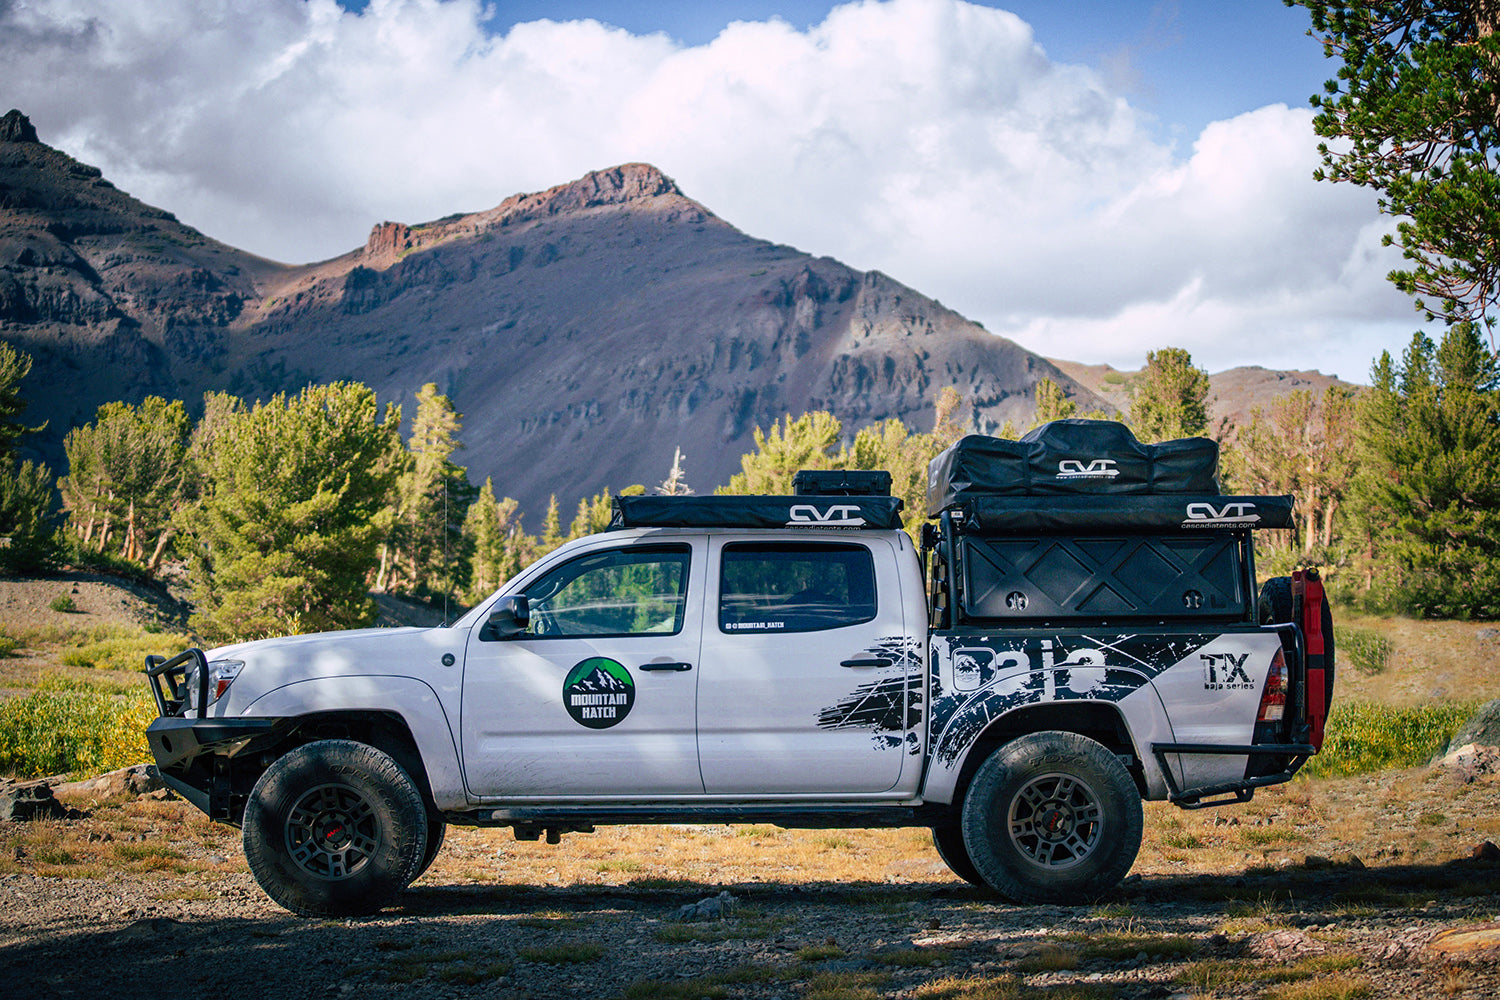 How to Choose a Roof Rack or Bed Rack for Overlanding